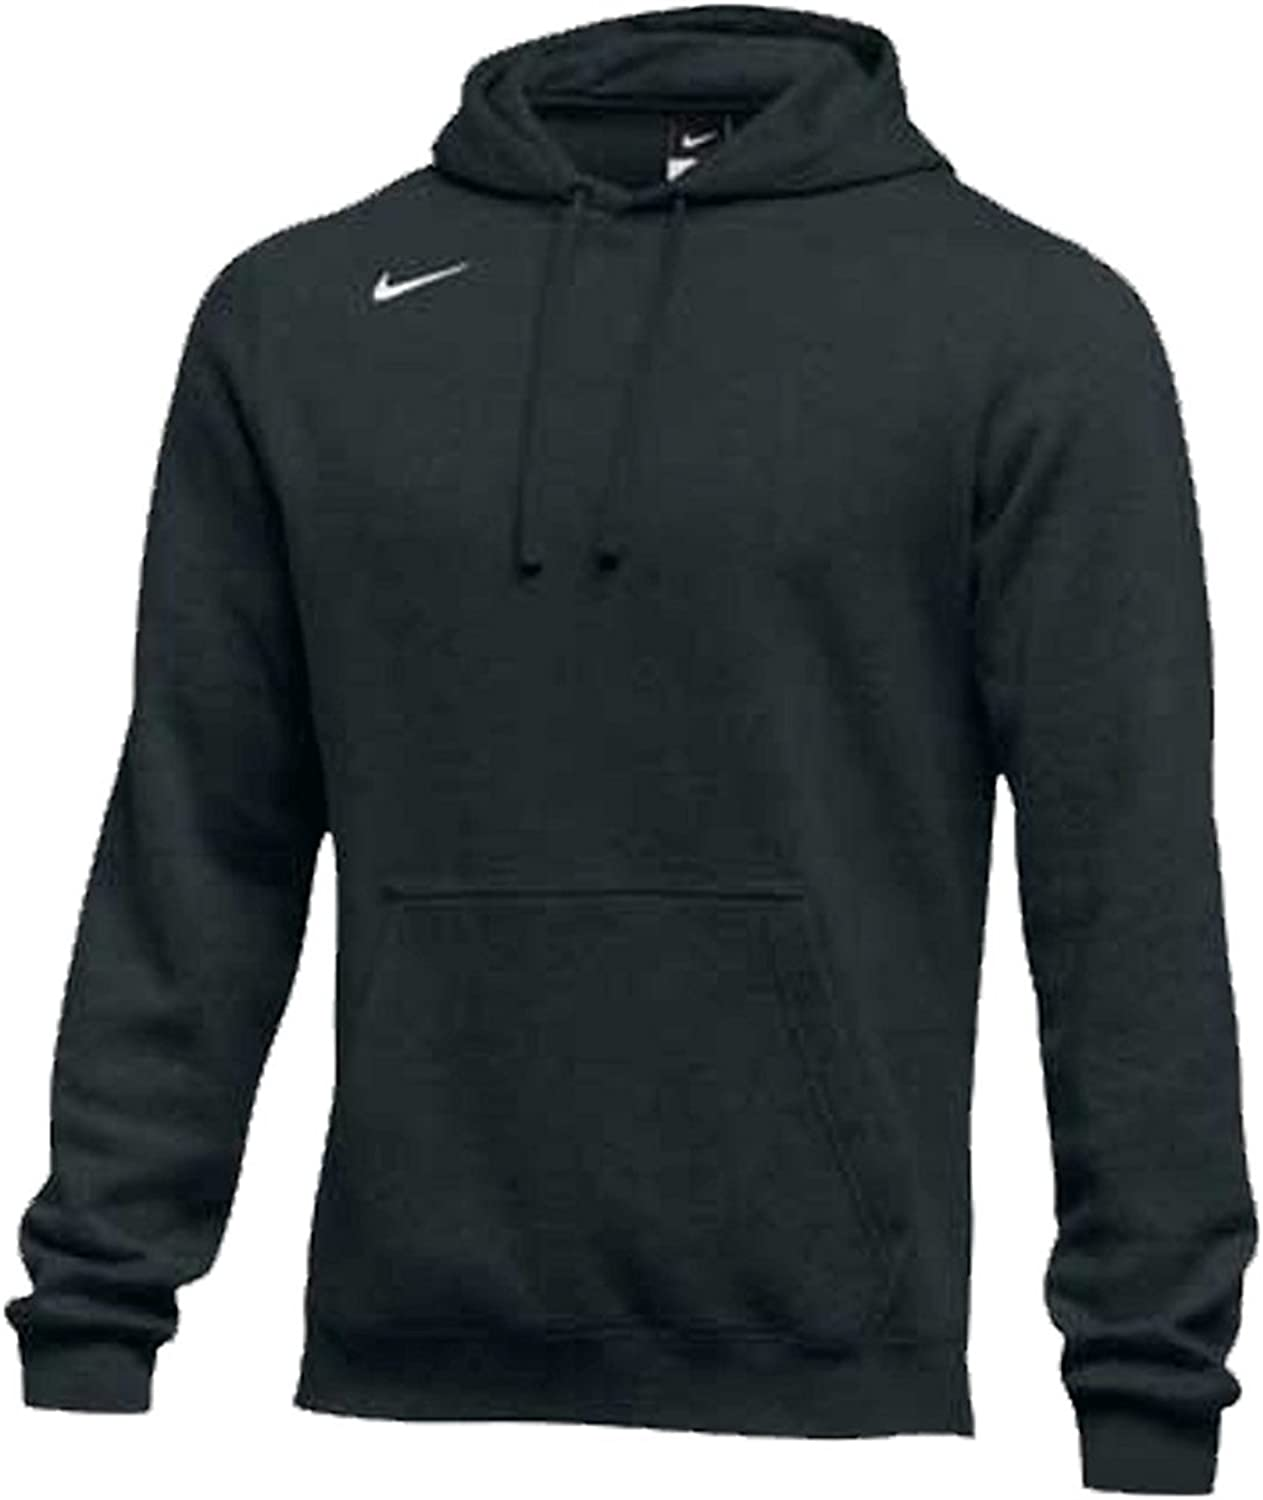 nike men's club fleece hoodie